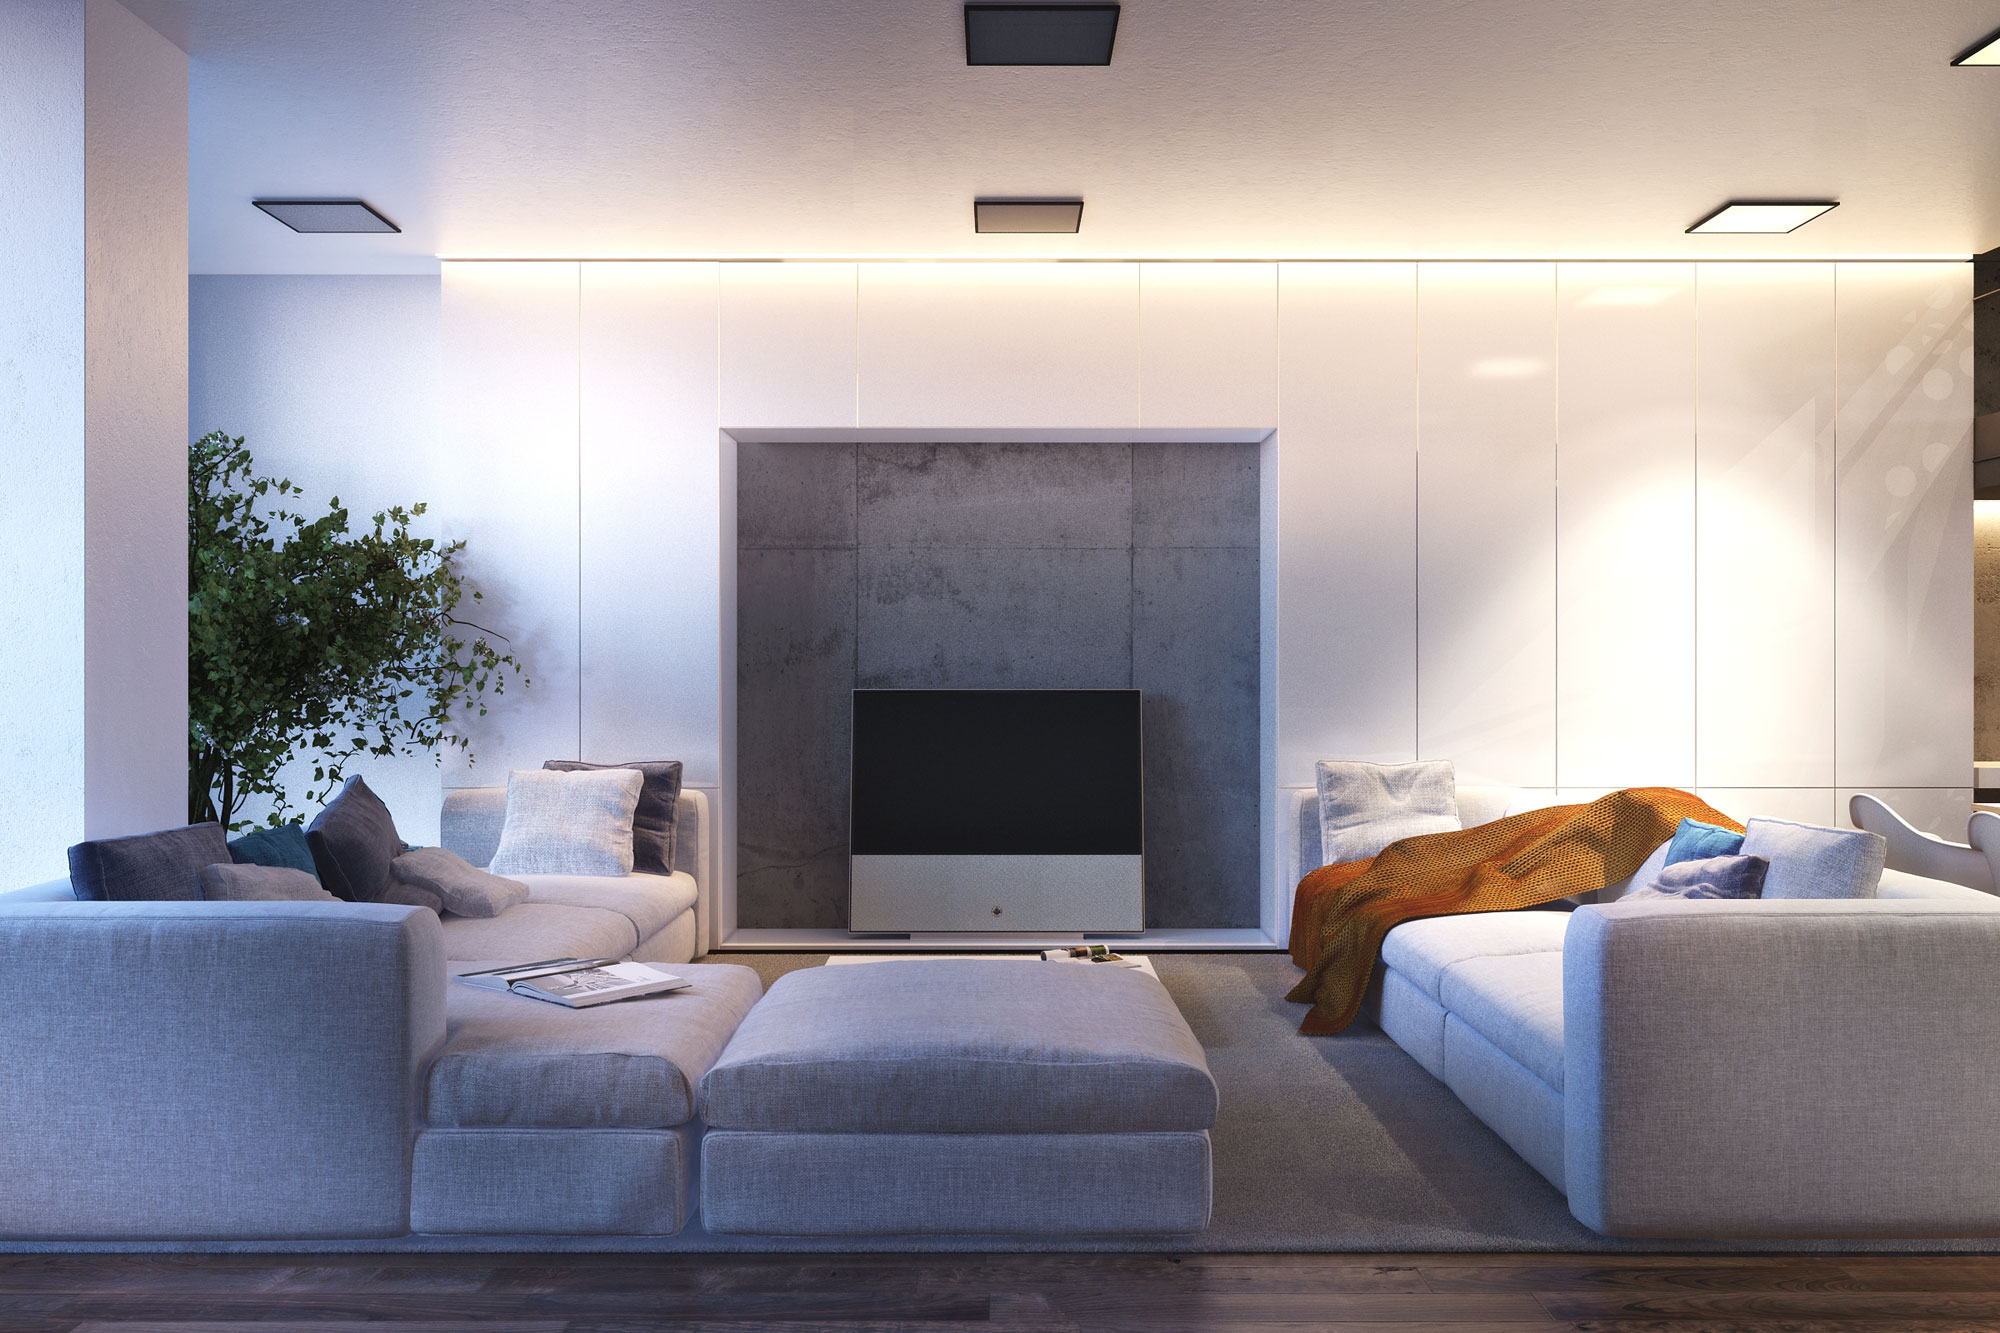 s apartment visualised by igor sirotov caandesign architecture